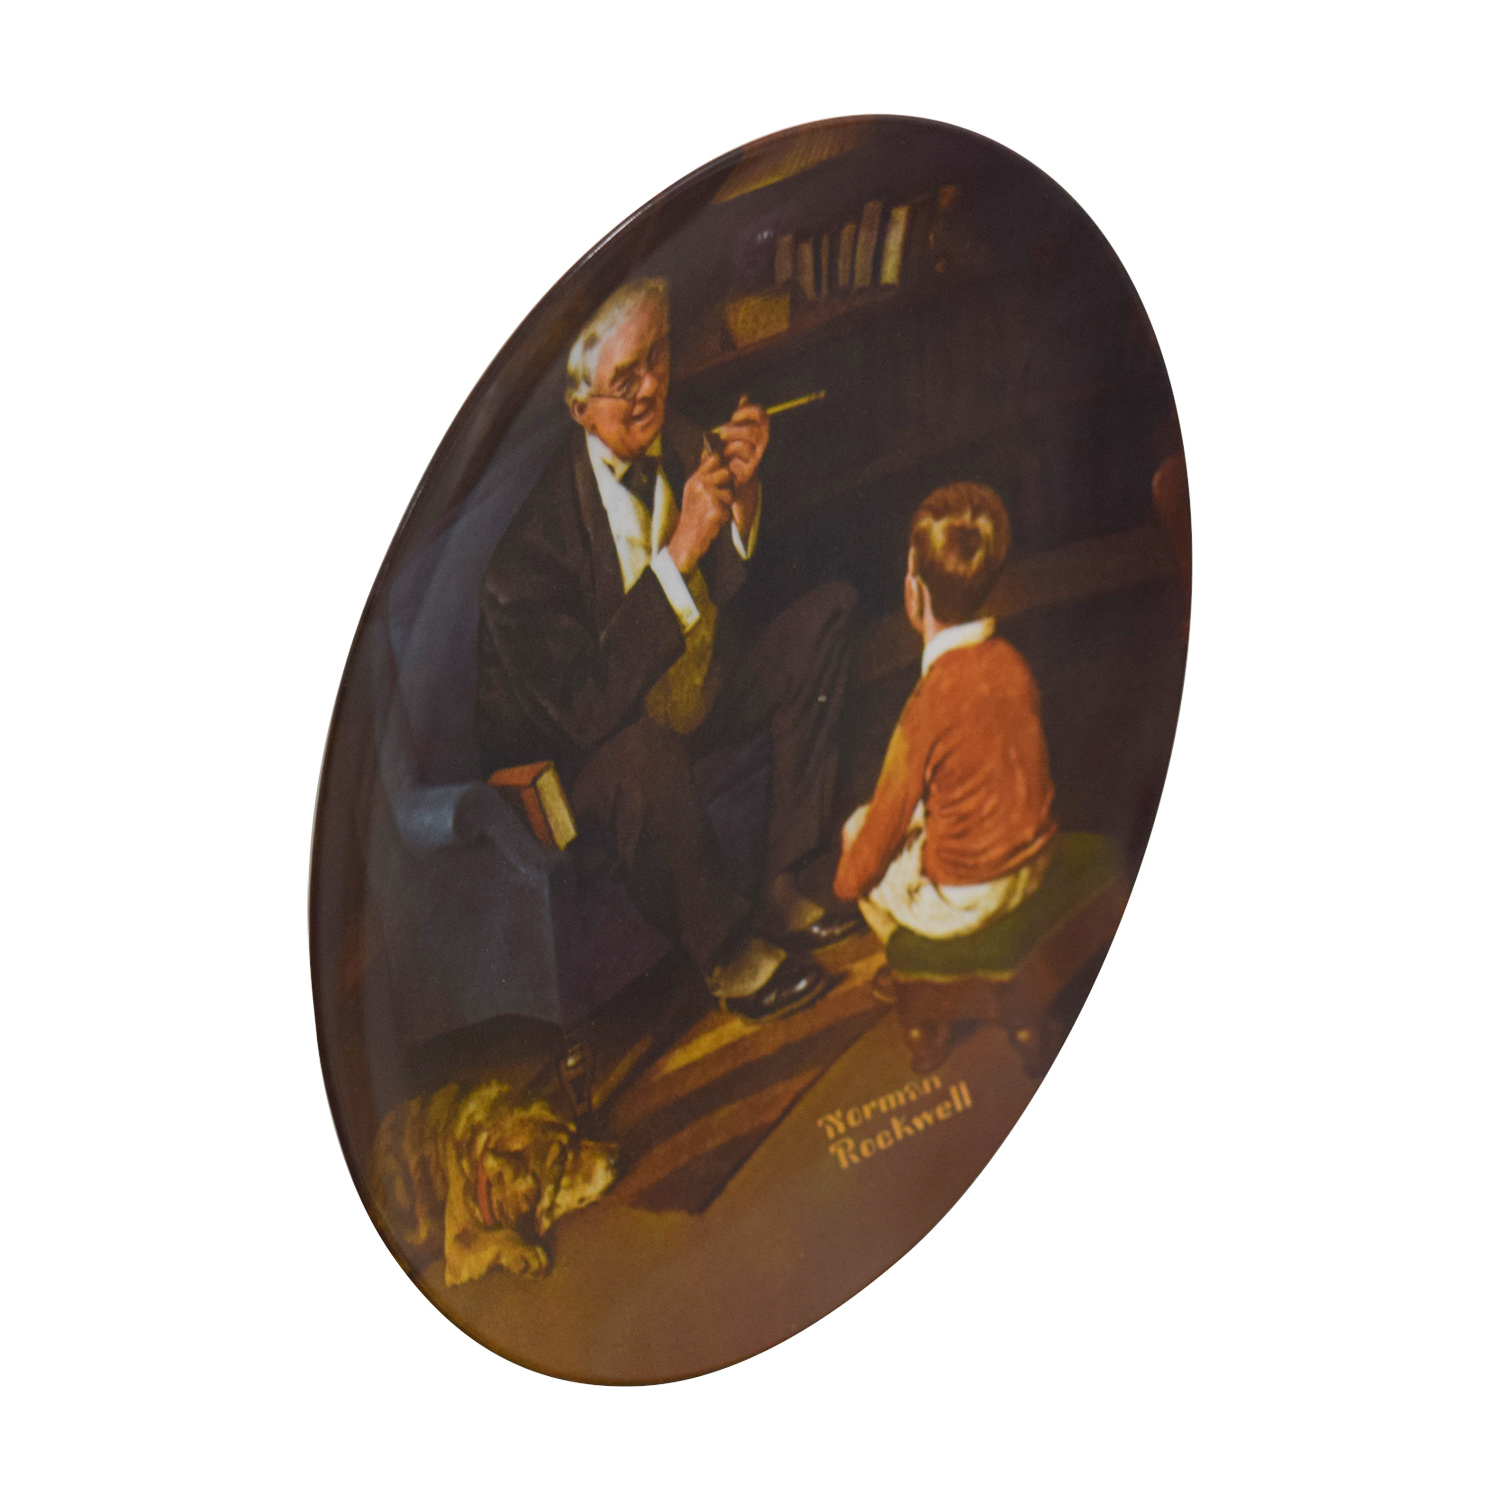 Edward M. Knowles Edward Knowles Reproduction Plate Norman Rockwell The Tycoon discount